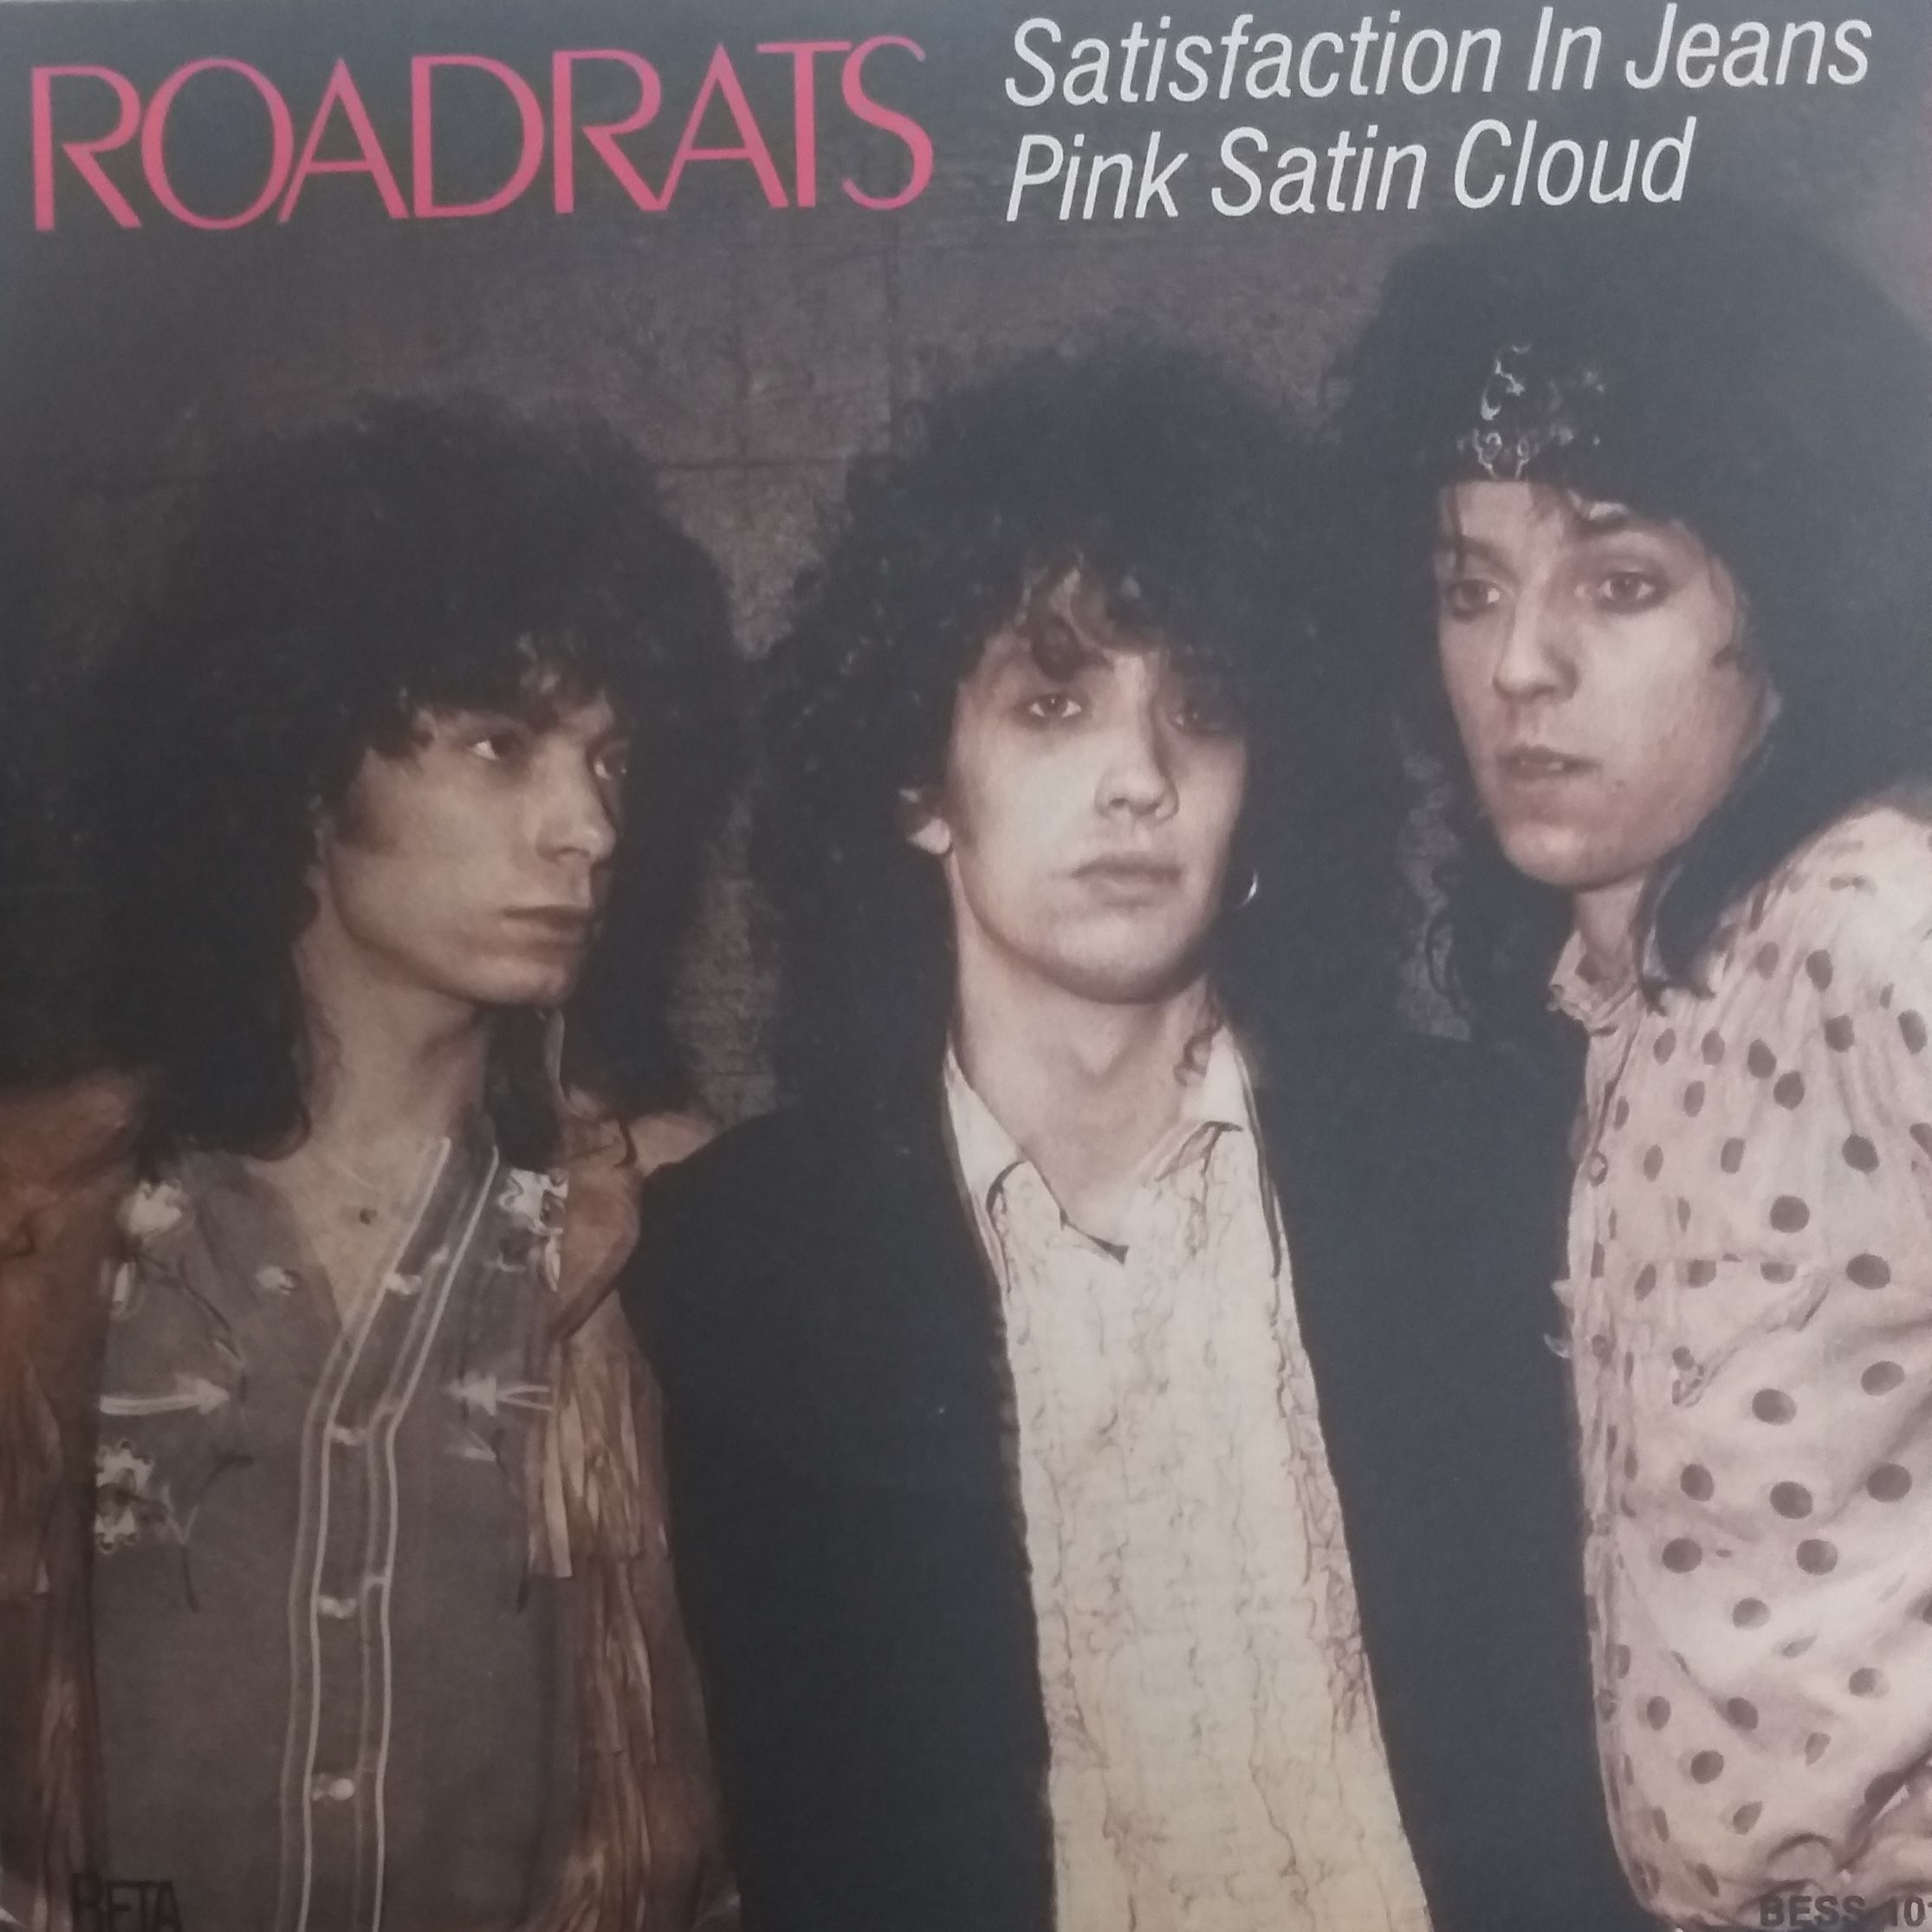 Roadrats Satisfaction in jeans LP undefined